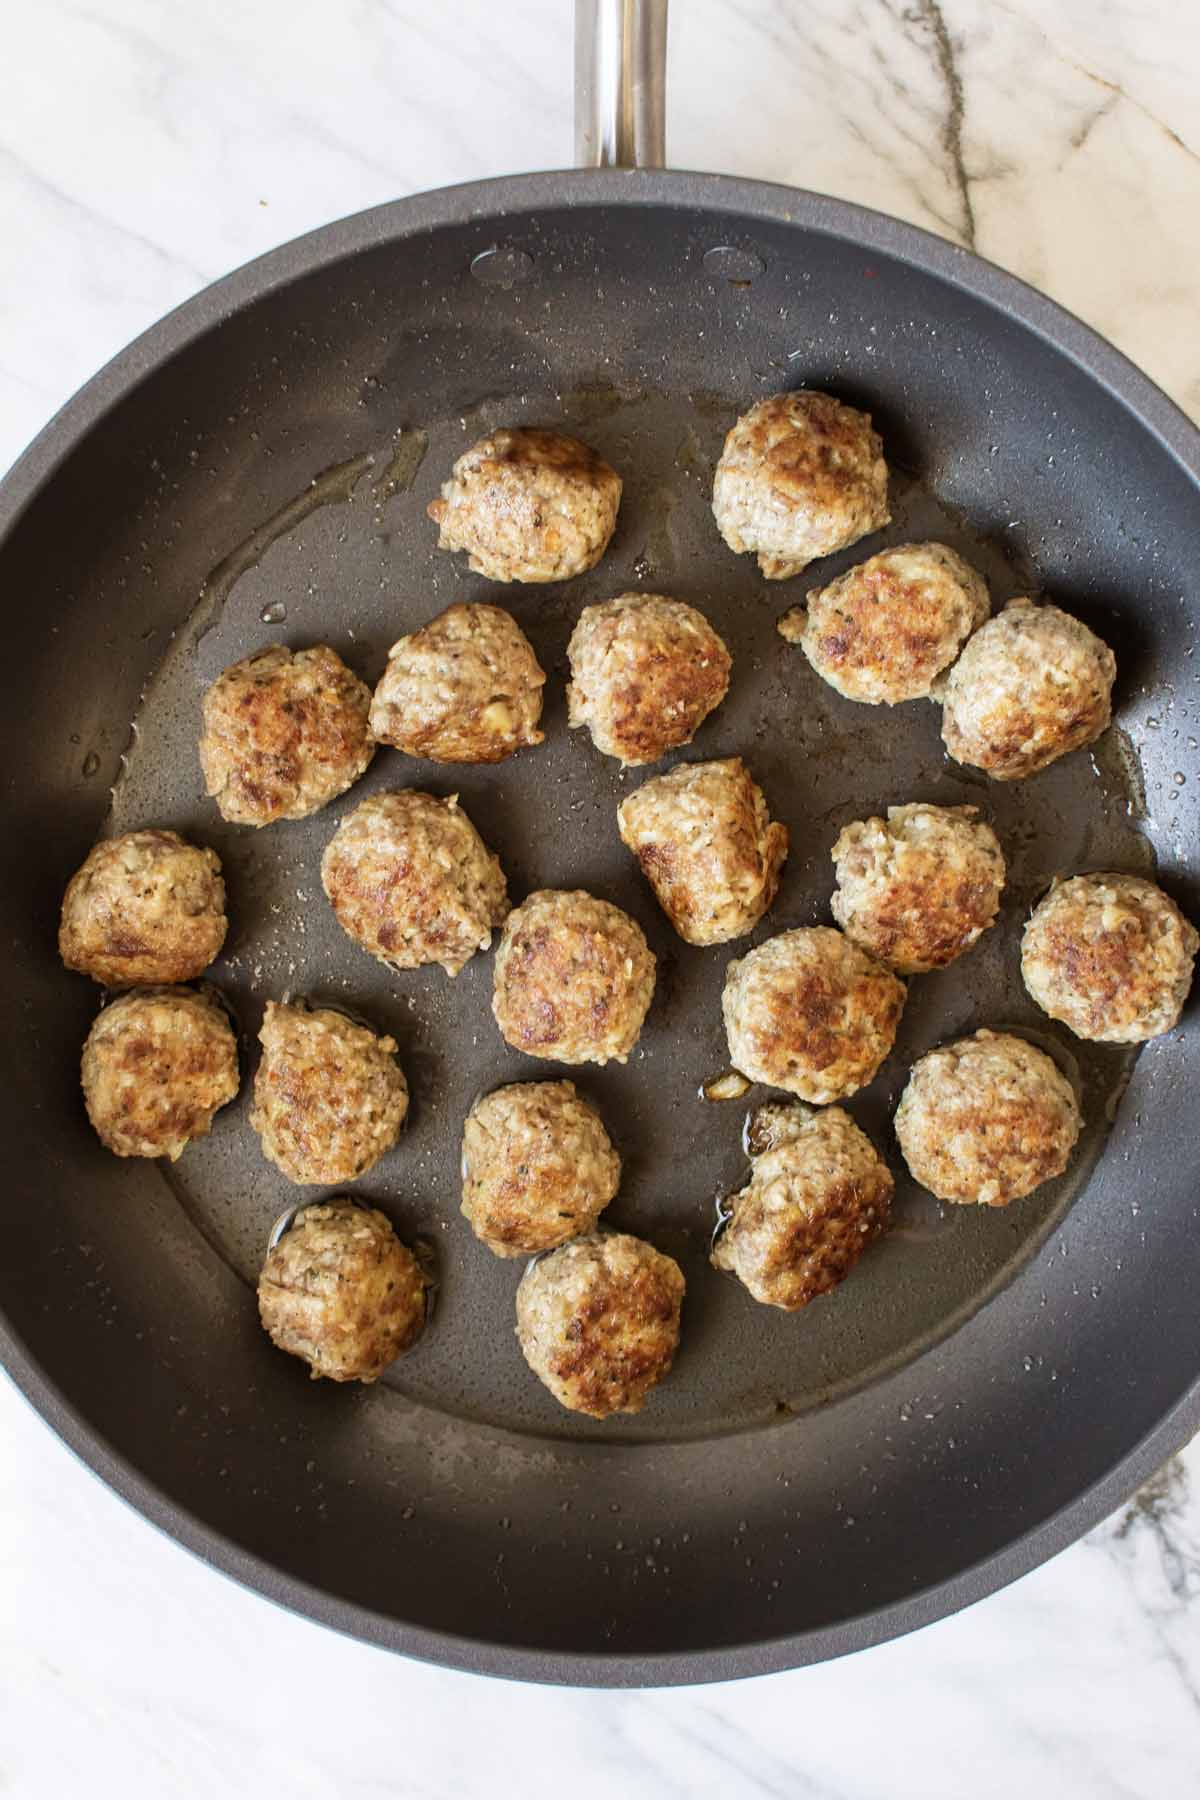 meatballs browning in a pan